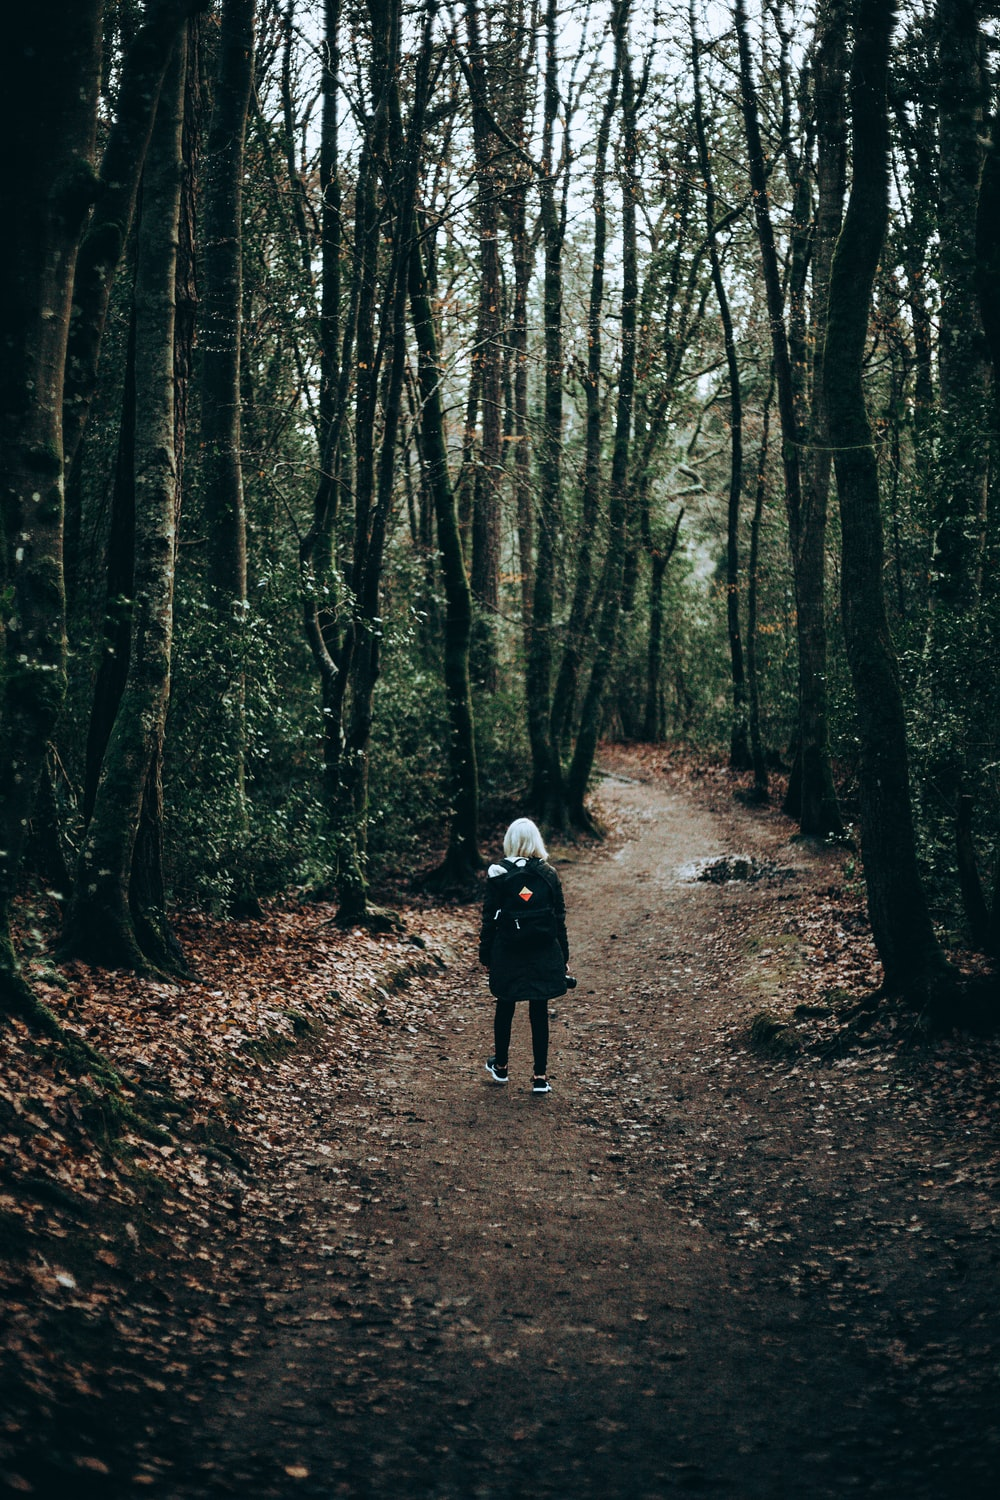 person standing in forest during daytime